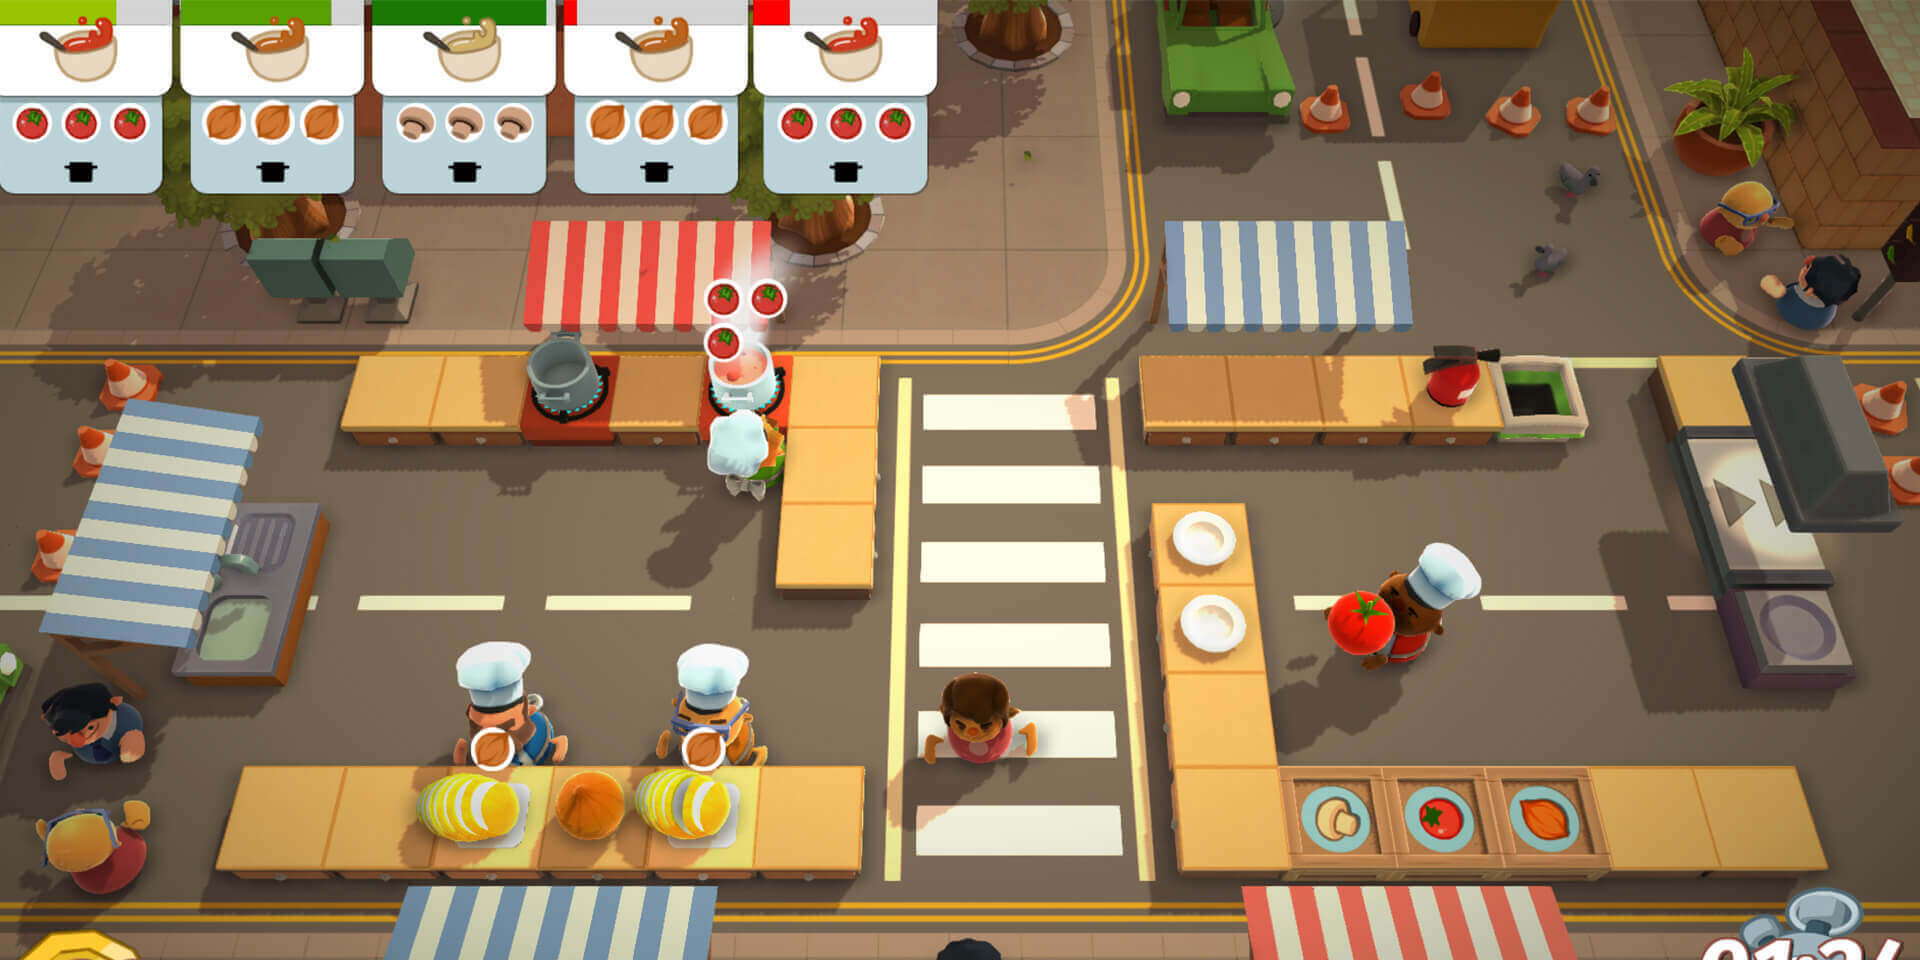 Download Overcooked for FREE at the Epic Games Store ...